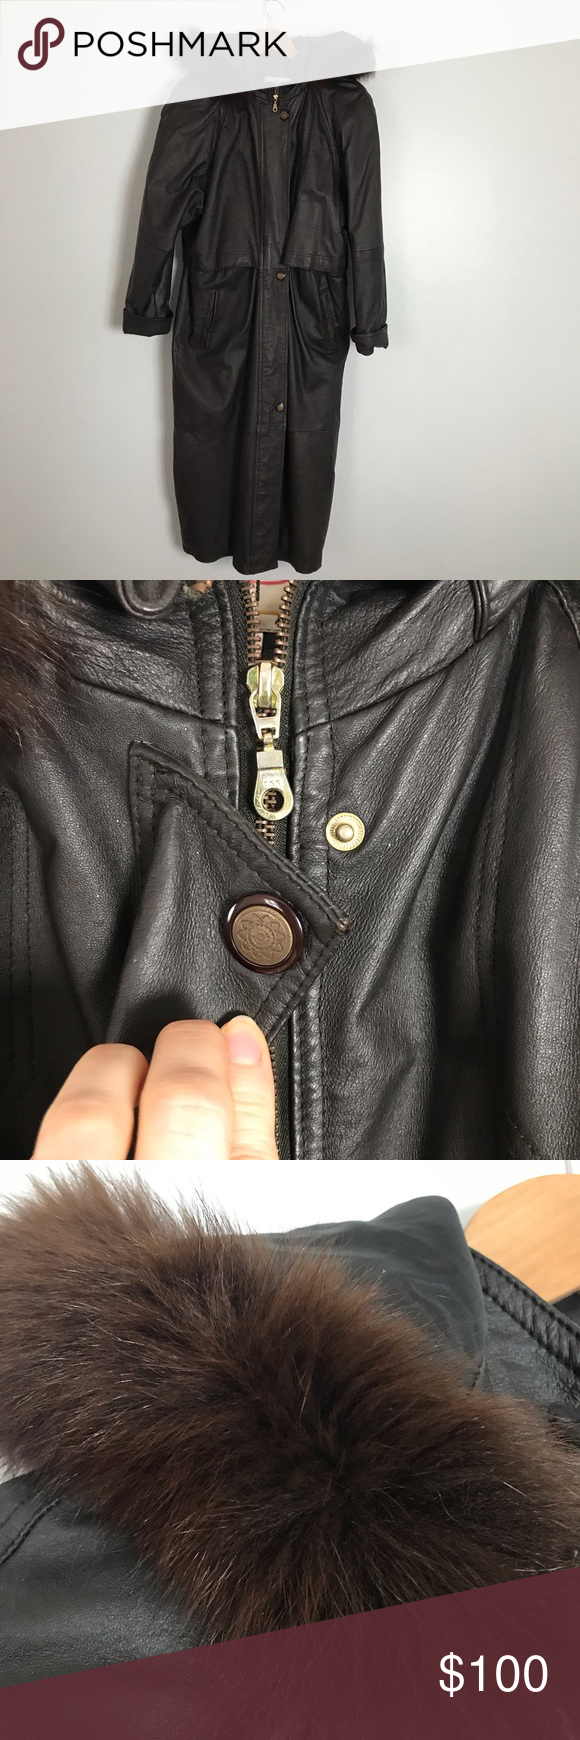 Vintage Comint Leather Trench Coat Size Small Vintage Comint Leather Trench Coat Woman S Size Small But Unroll The Sleeve Leather Trench Coat Trench Coat Coat [ 1740 x 580 Pixel ]